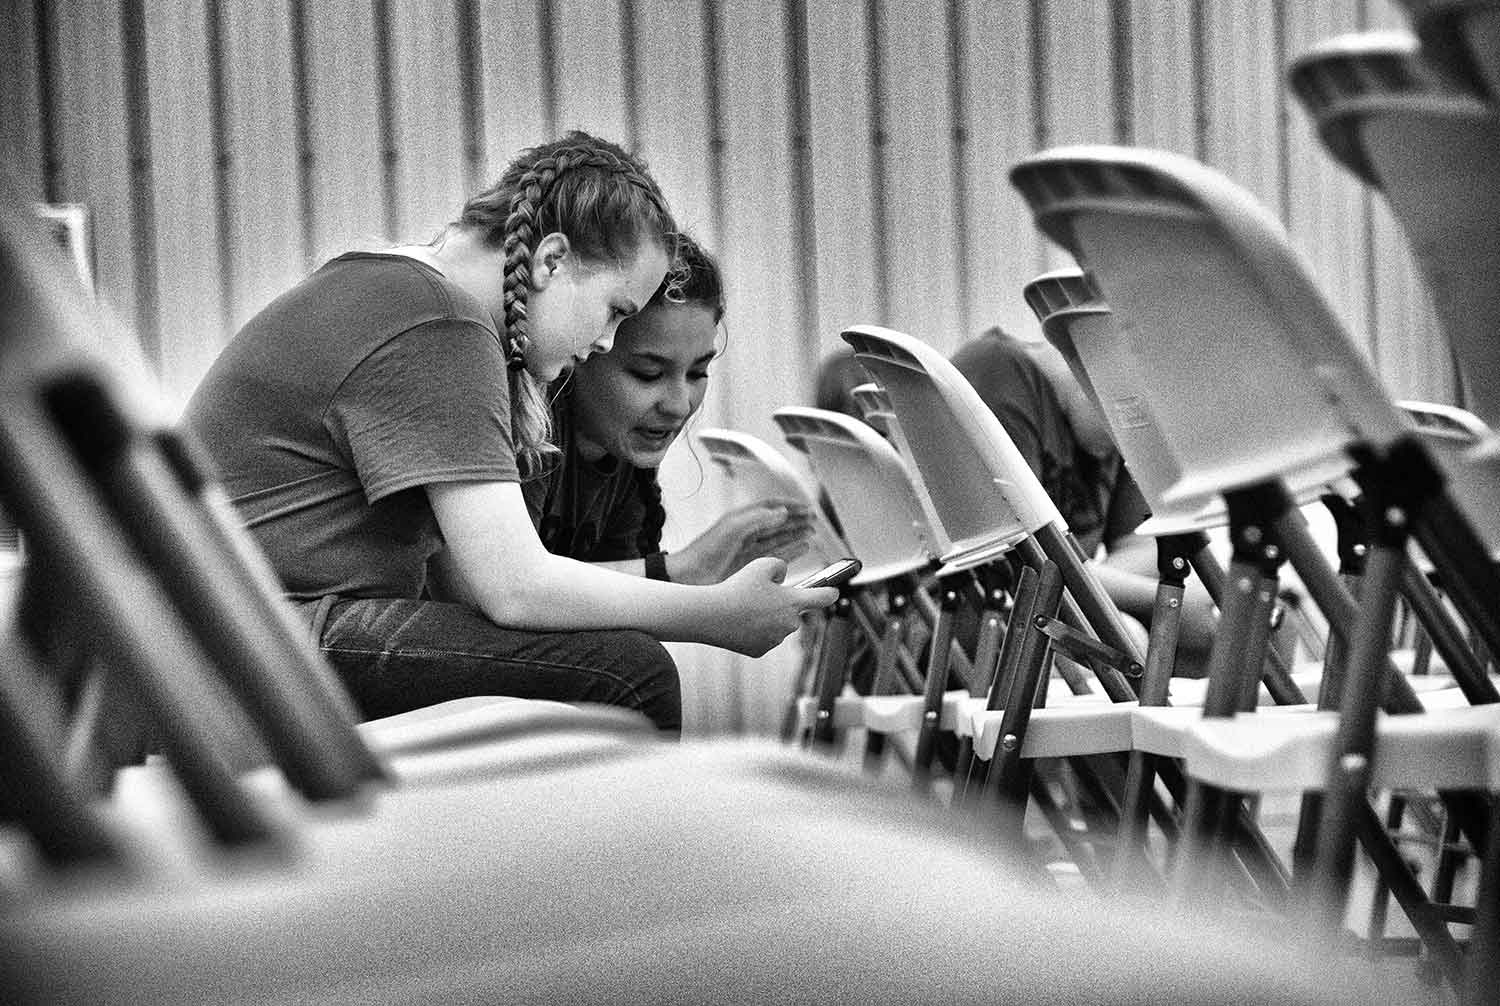 Keylyn (13) and Elisa (12), scroll through messages as they wait for the Break the Cycle church service to start. photo by Caitlyn Jordan - 2019